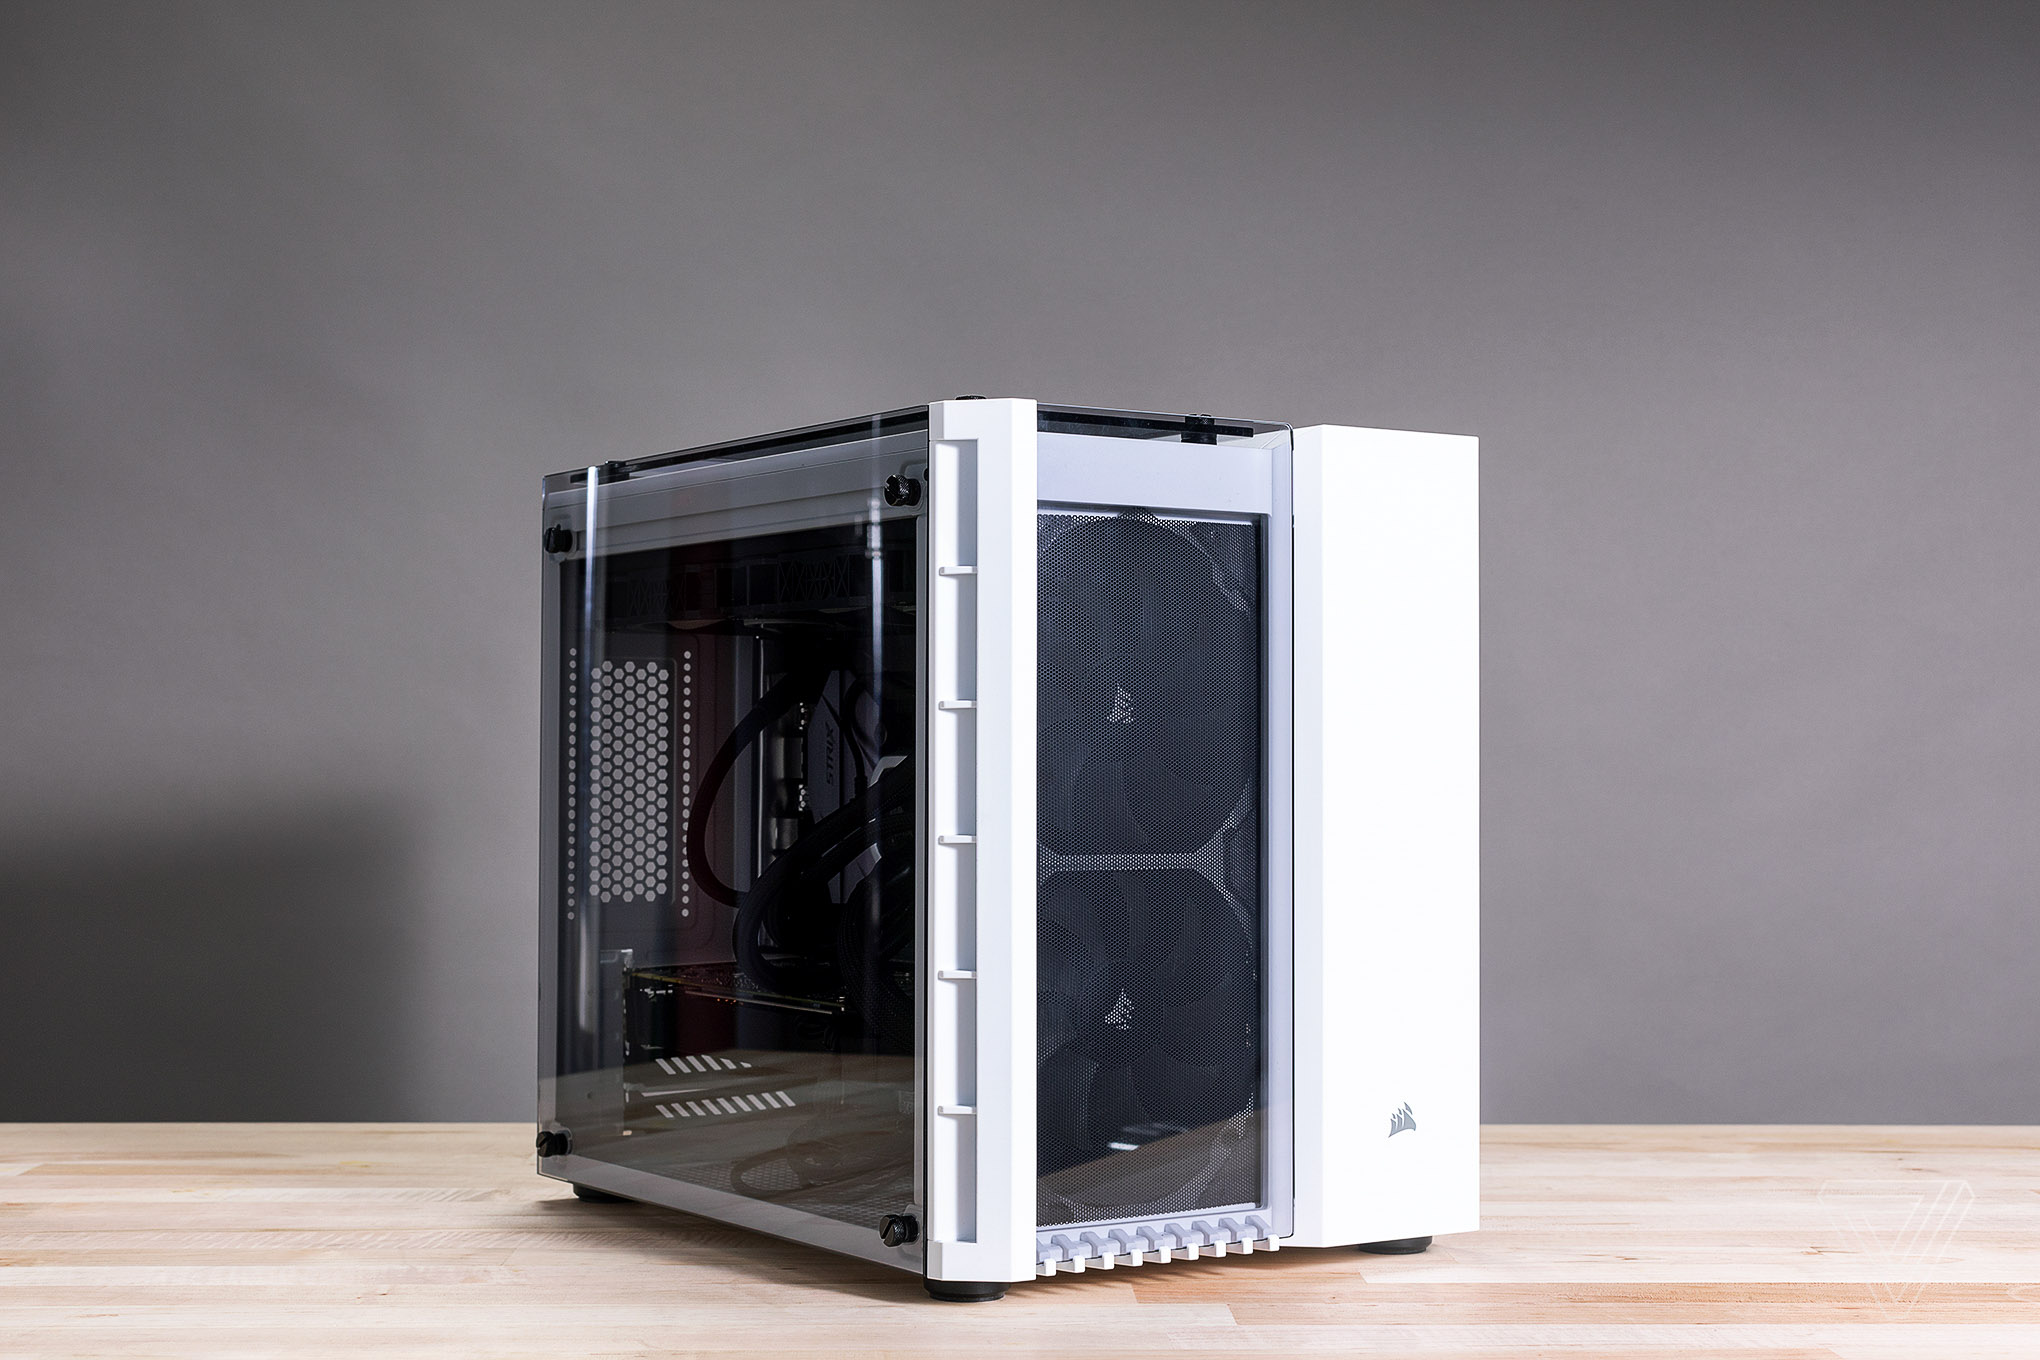 How To Build A Custom Pc For Gaming Editing Or Coding The Verge Computer Tower Parts Diagram Images Name Photo By Amelia Holowaty Krales So Now That All Your